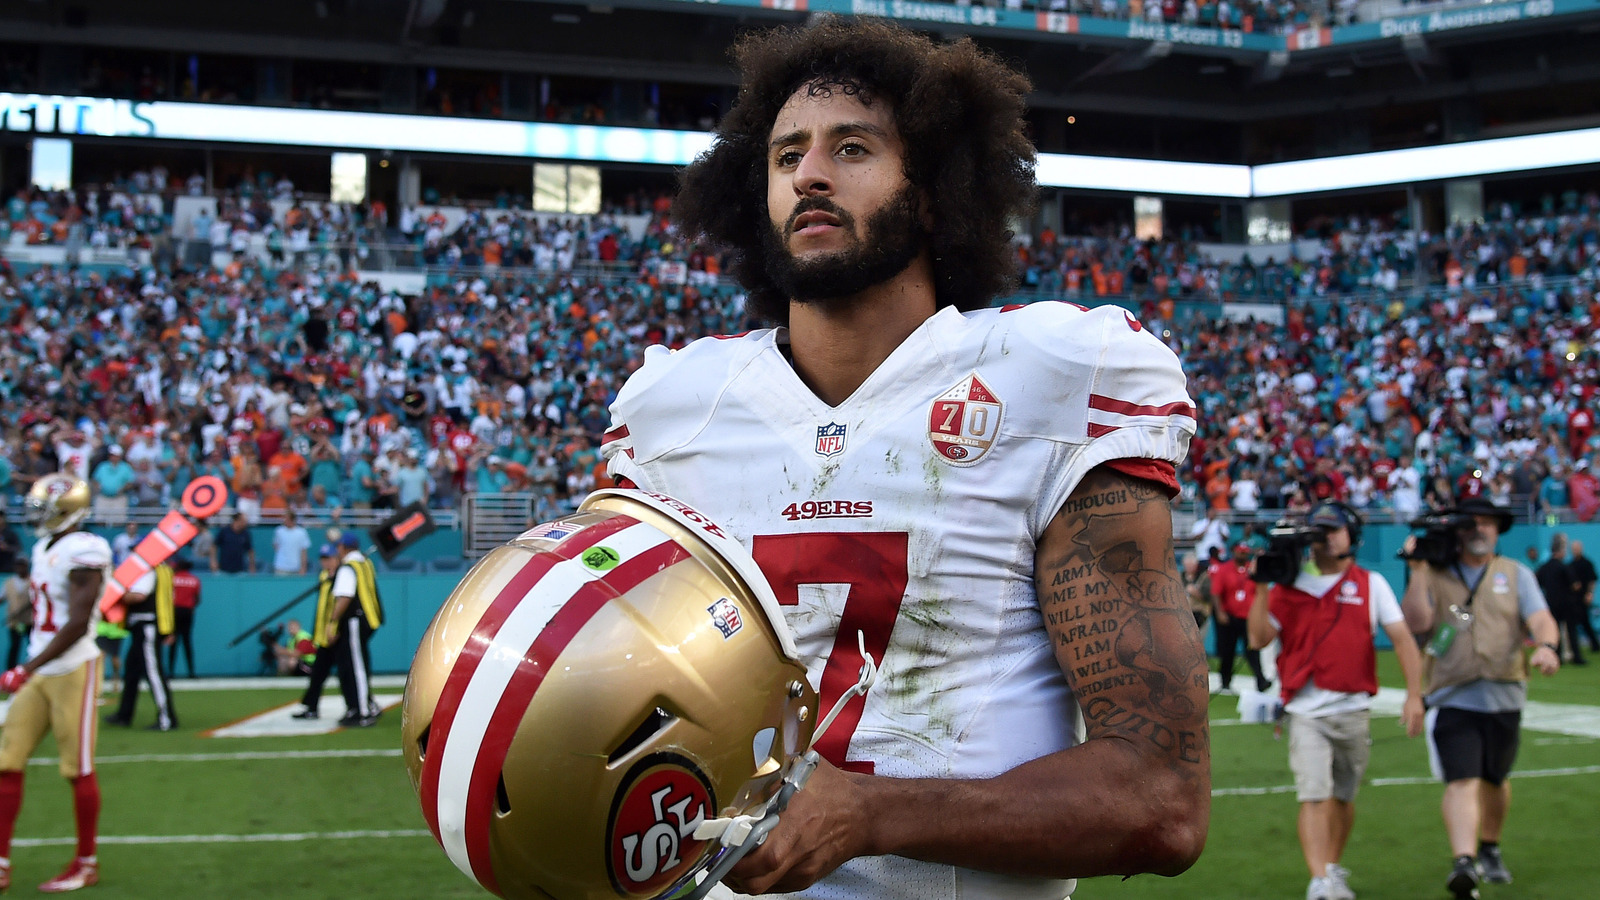 Colin Kaepernick's mom fires back after Urban Meyer's wife criticizes QB